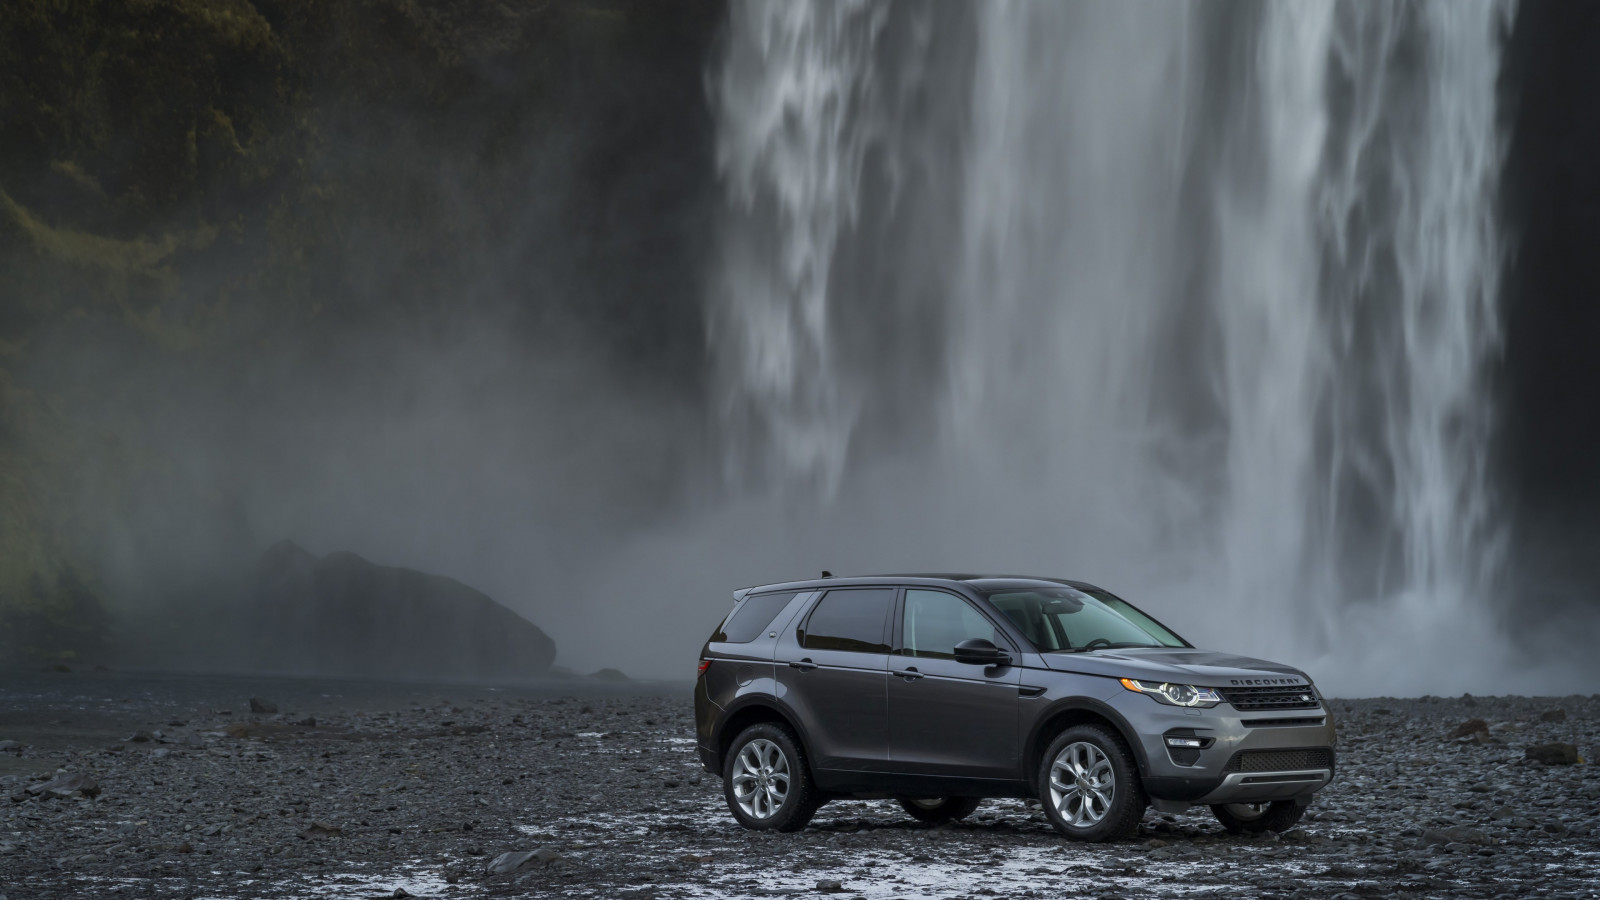 Land Rover Discovery Sport wallpaper 1600x900